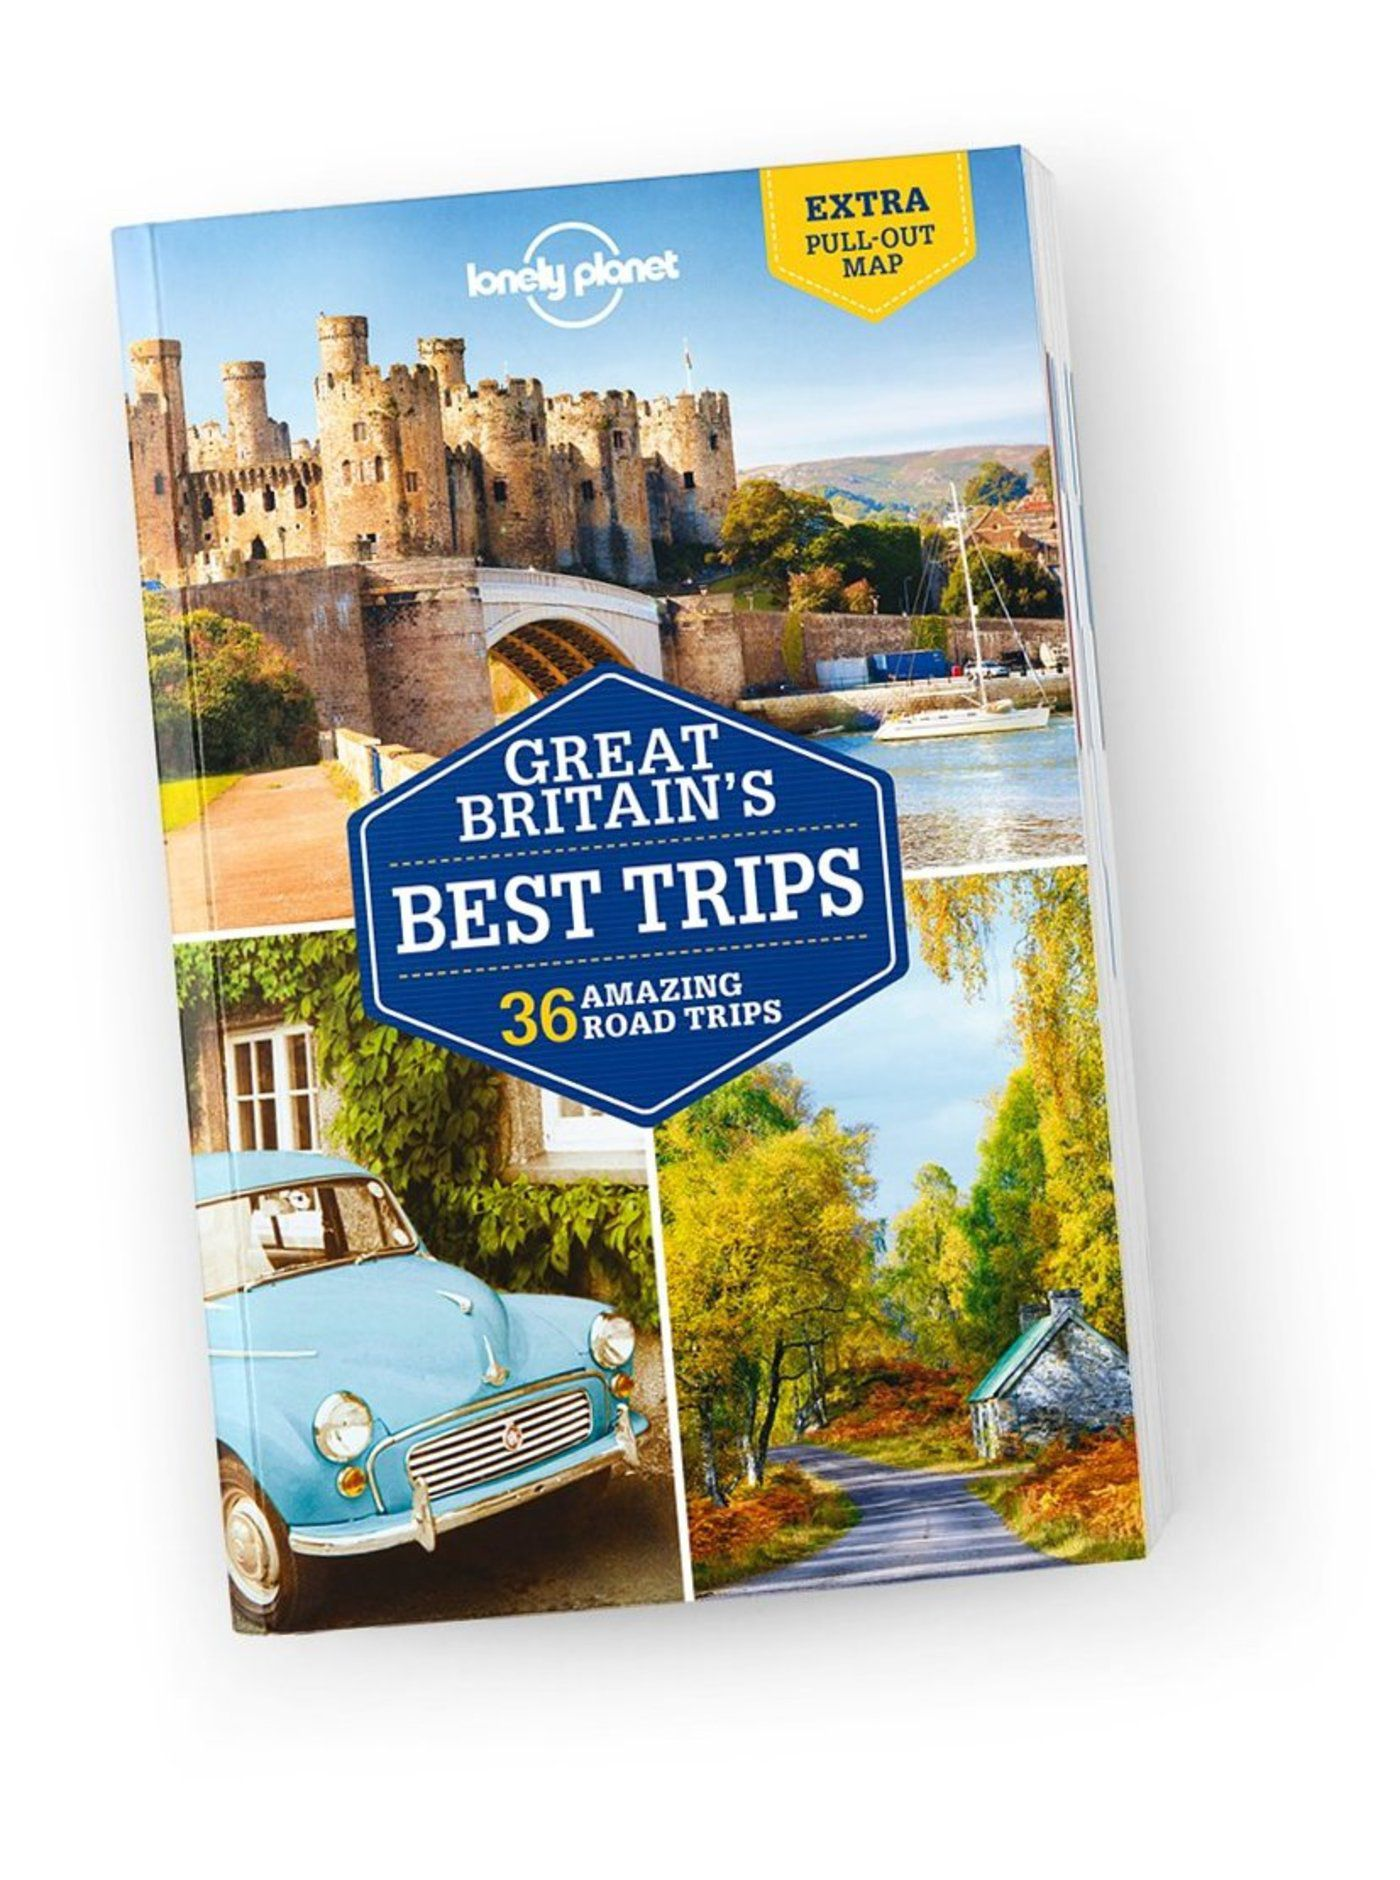 Great Britain's Best Trips - Central England (PDF Chapter), 1st Edition Mar 2017 by Lonely Planet 9781786573278005